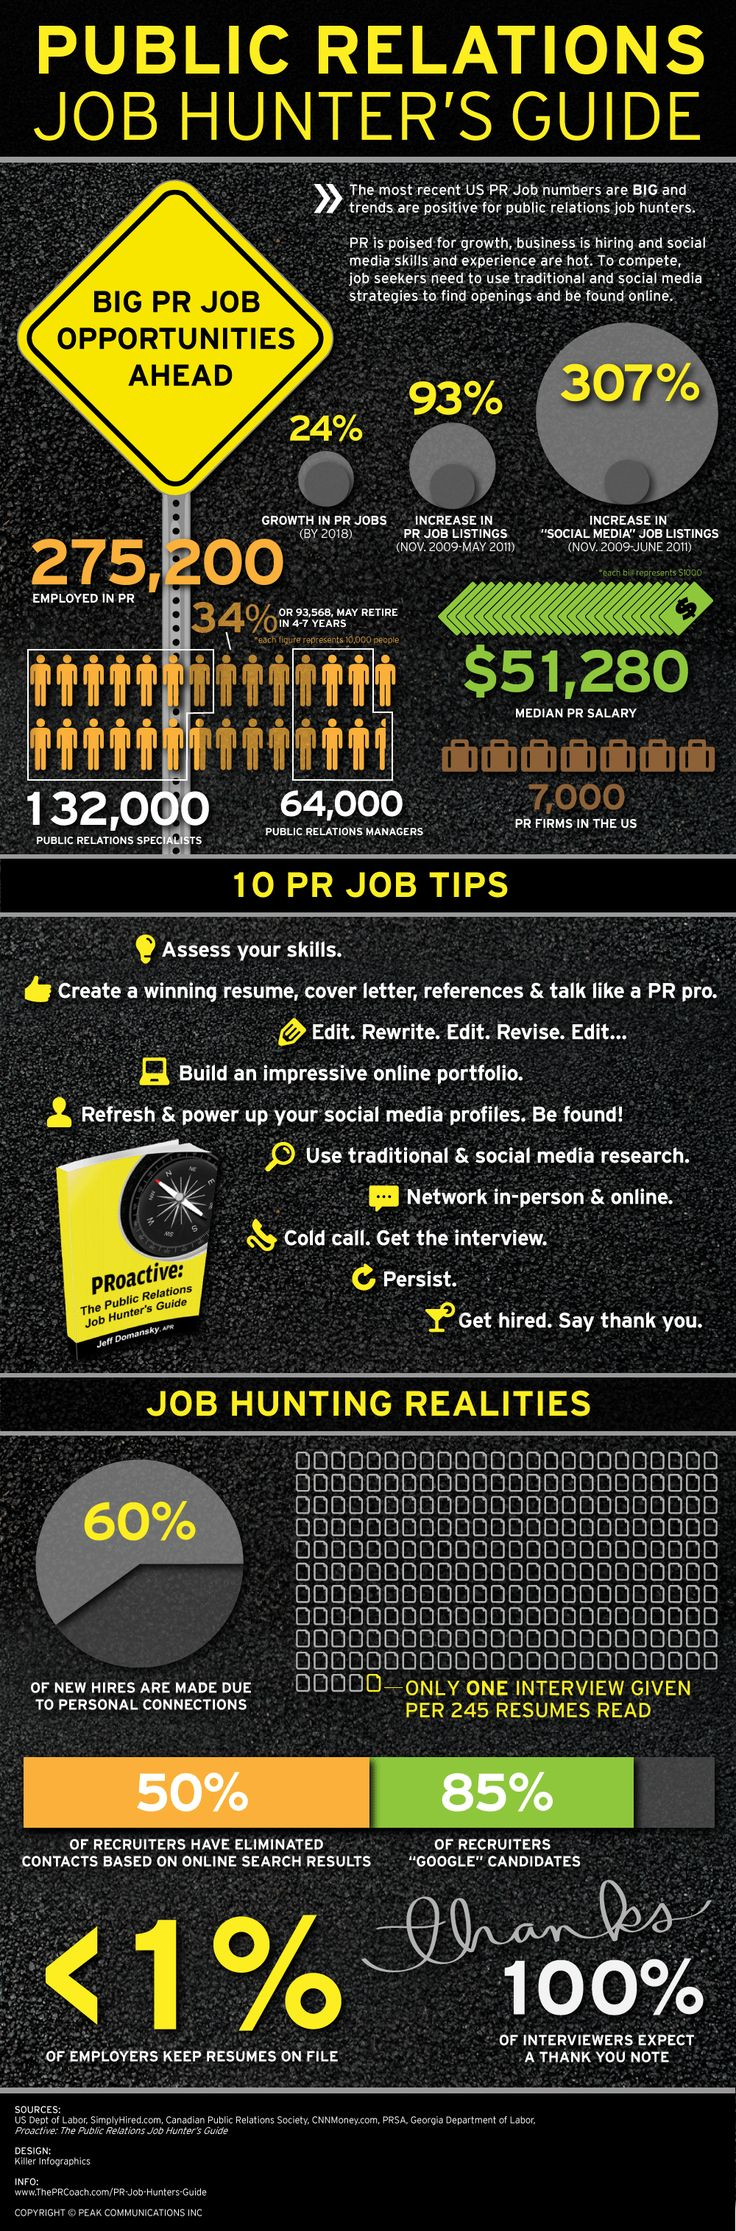 Public Relations Job Hunter's Guide. Sometimes its good to know the facts. #PR #JobHunt #Reality